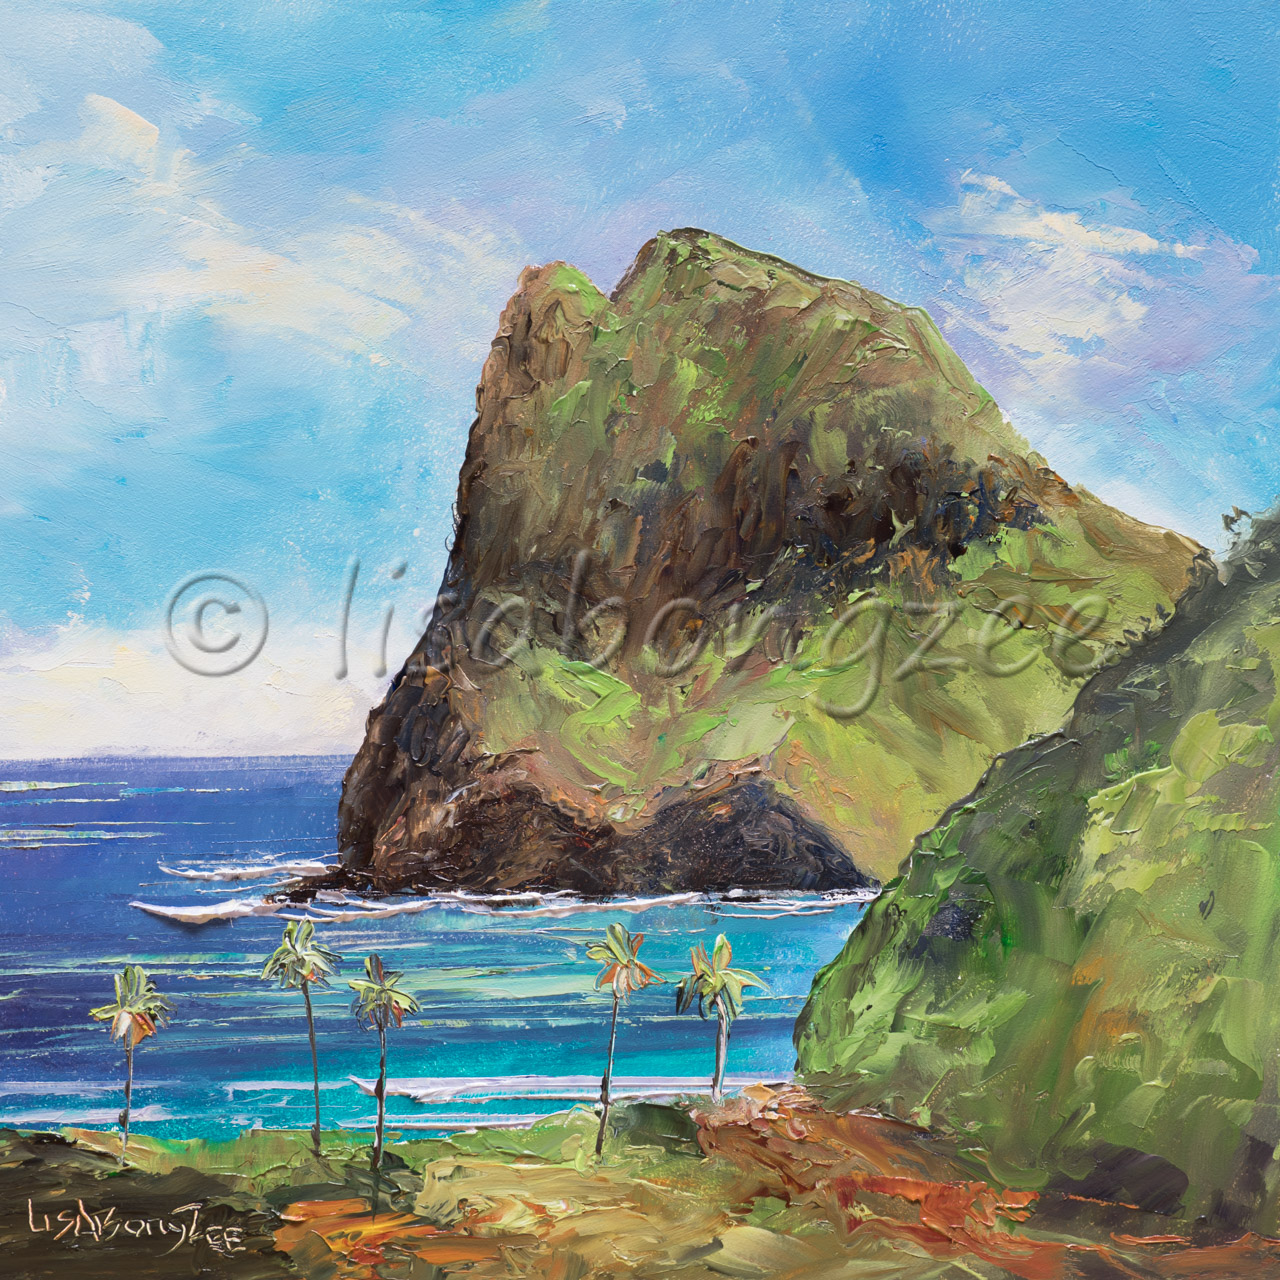 original oil of Kahakuloa Maui. A very large rock in the ocean covered in grass and plants. A deep blue ocean surrounding it and palm trees lining the shore